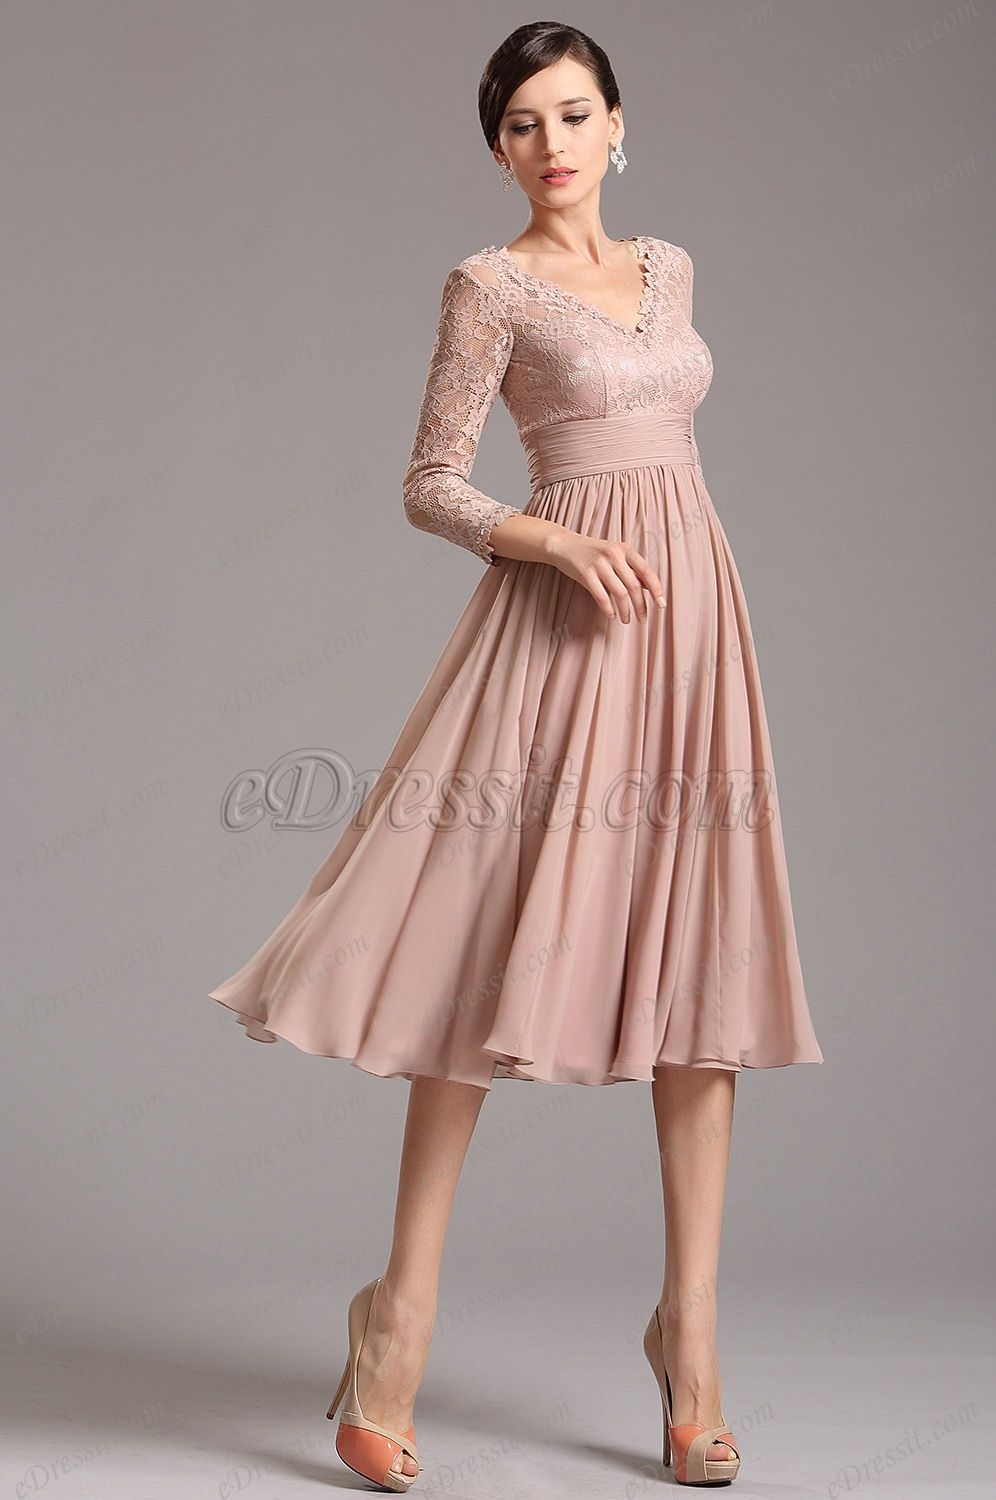 Rosy Brown Tea Length Cocktail Dress with Lace Sleeves (26160146) f58368300